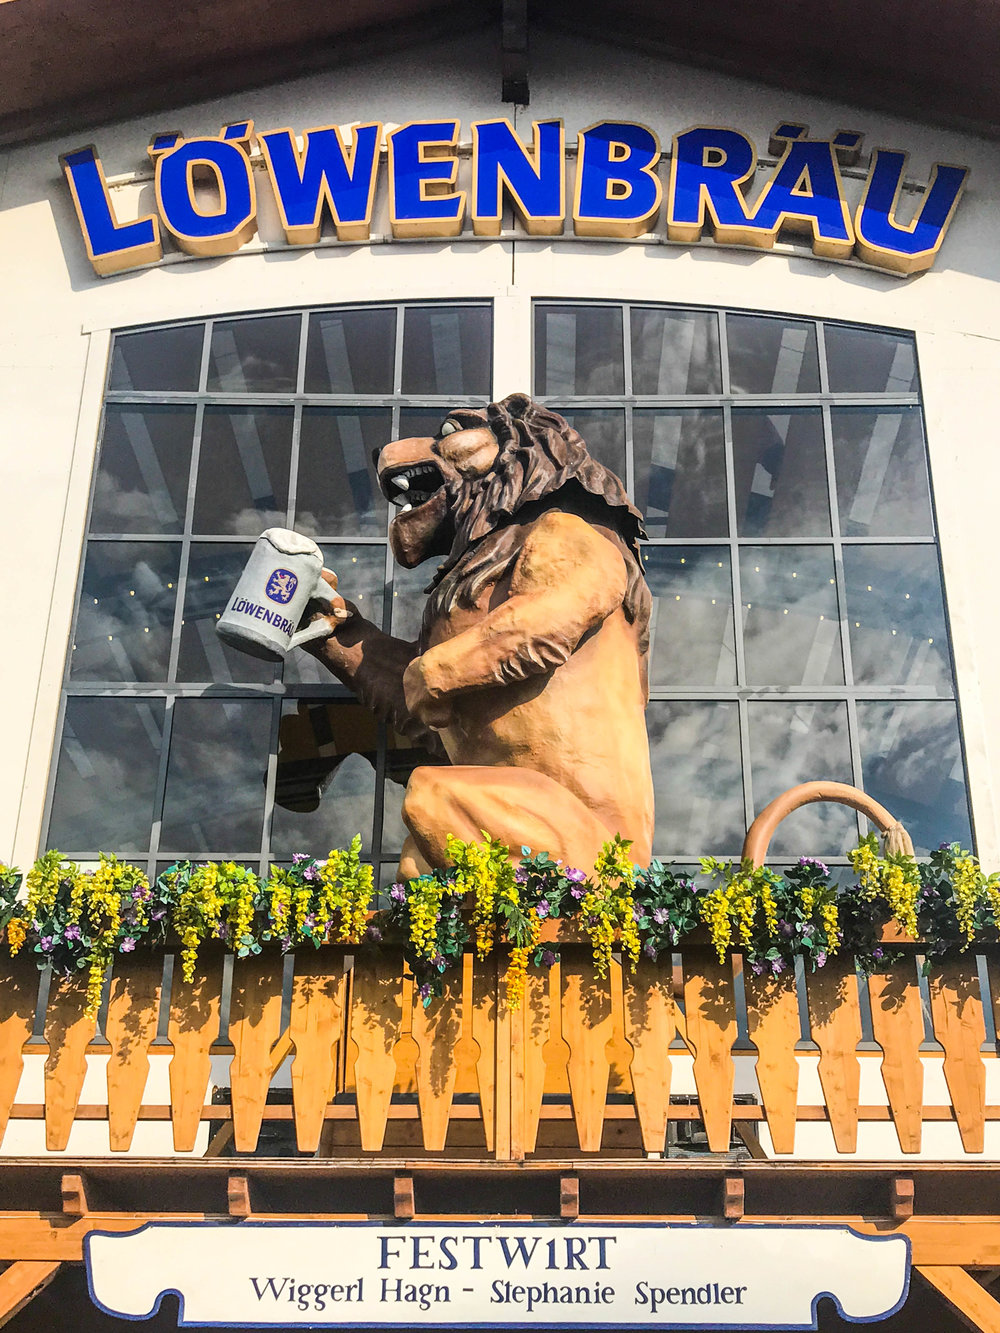 Outside Lowenbrau tent